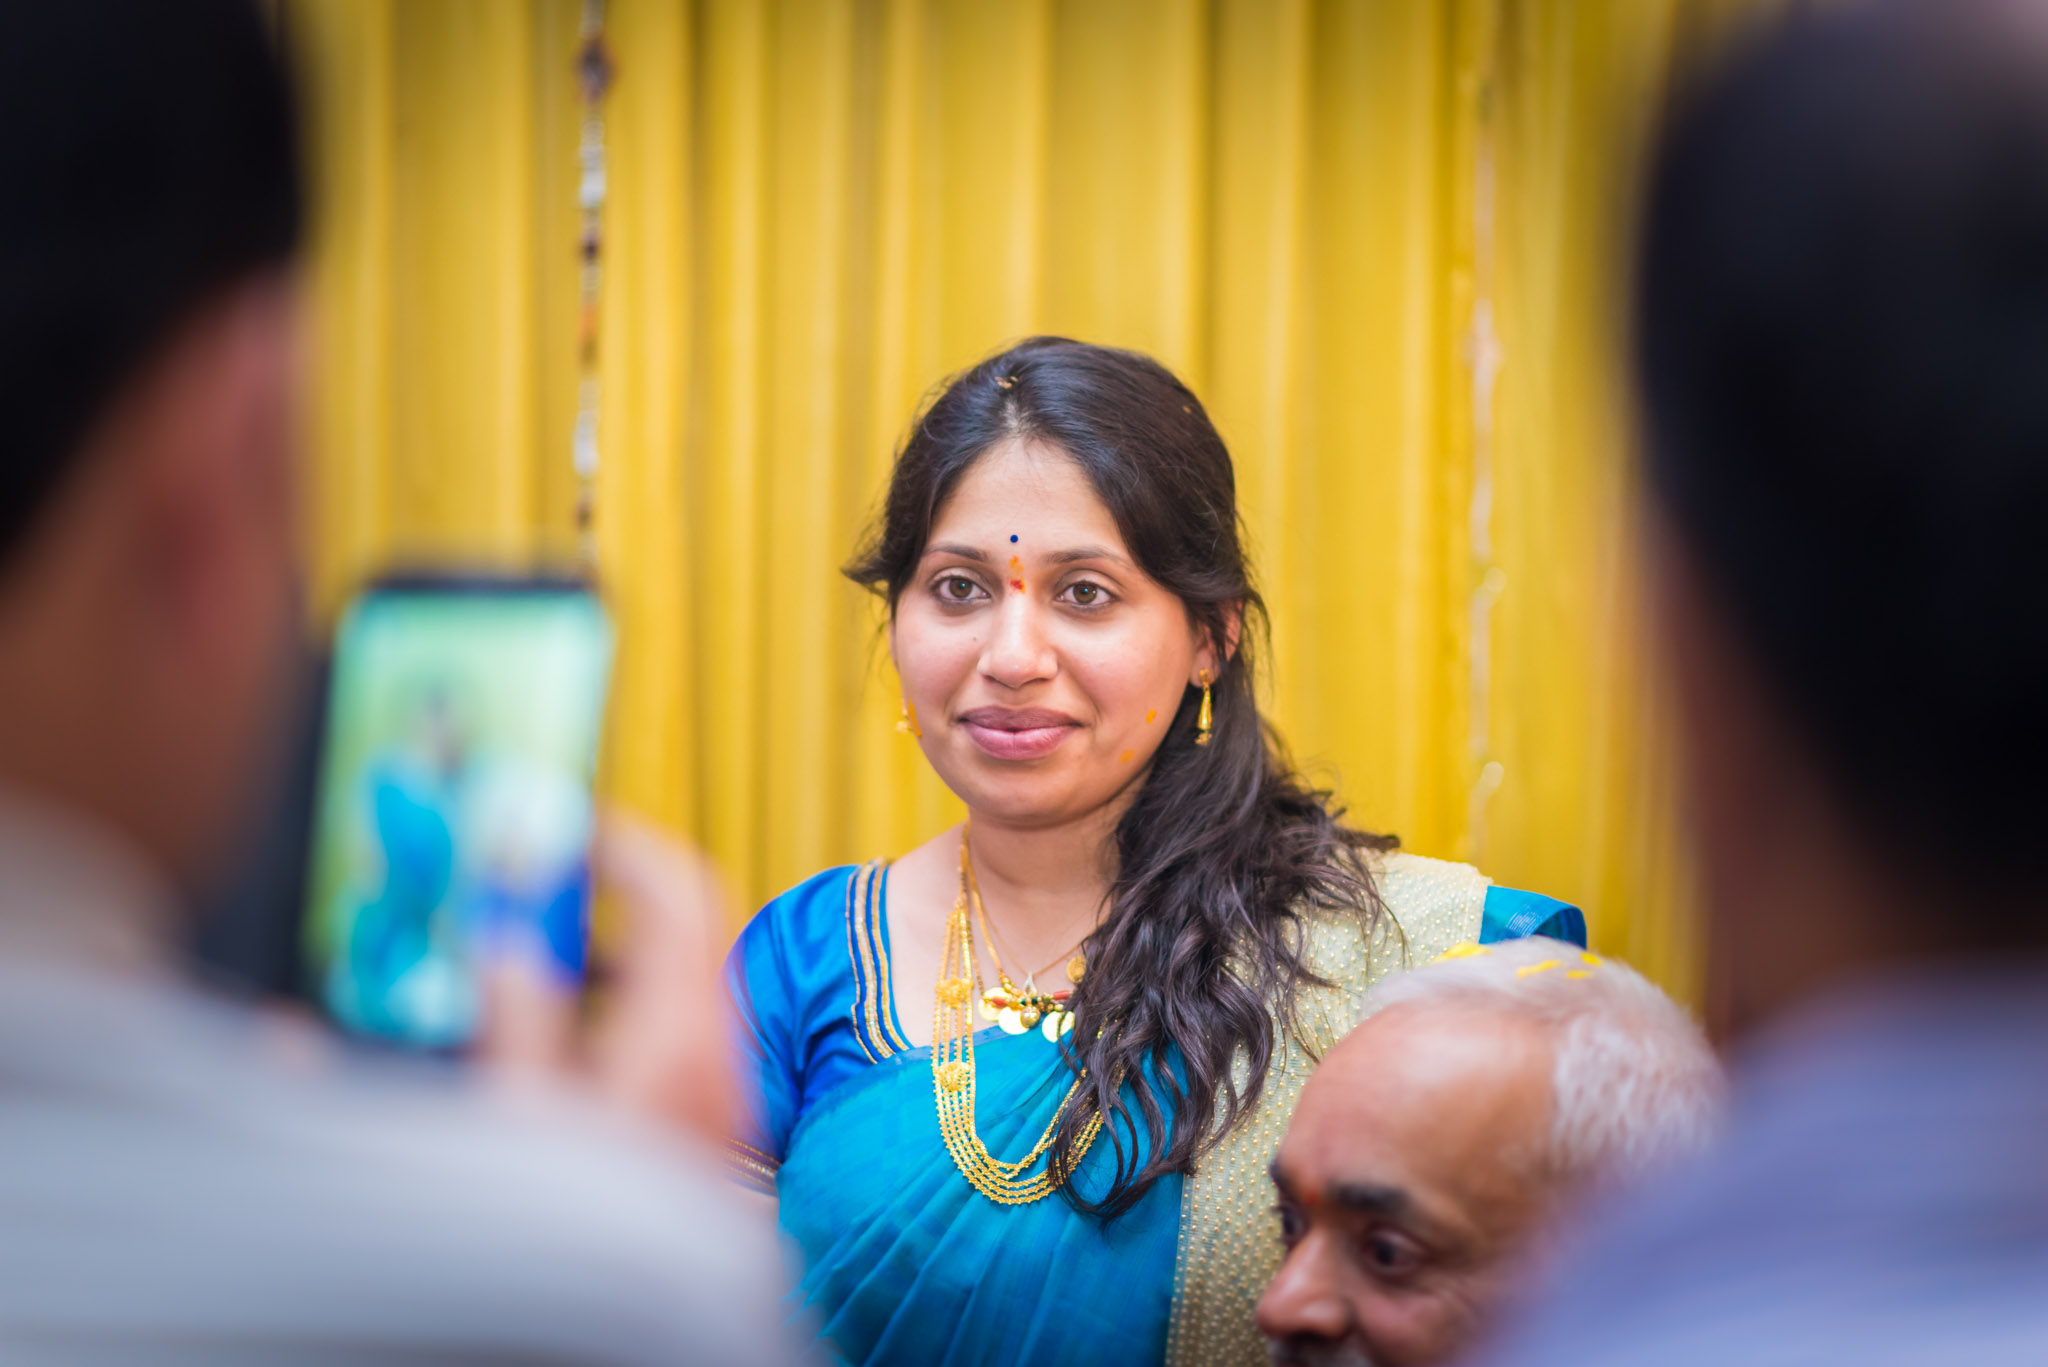 WhatKnot-Candid-Wedding-Photography-Mumbai-Bangalore-81